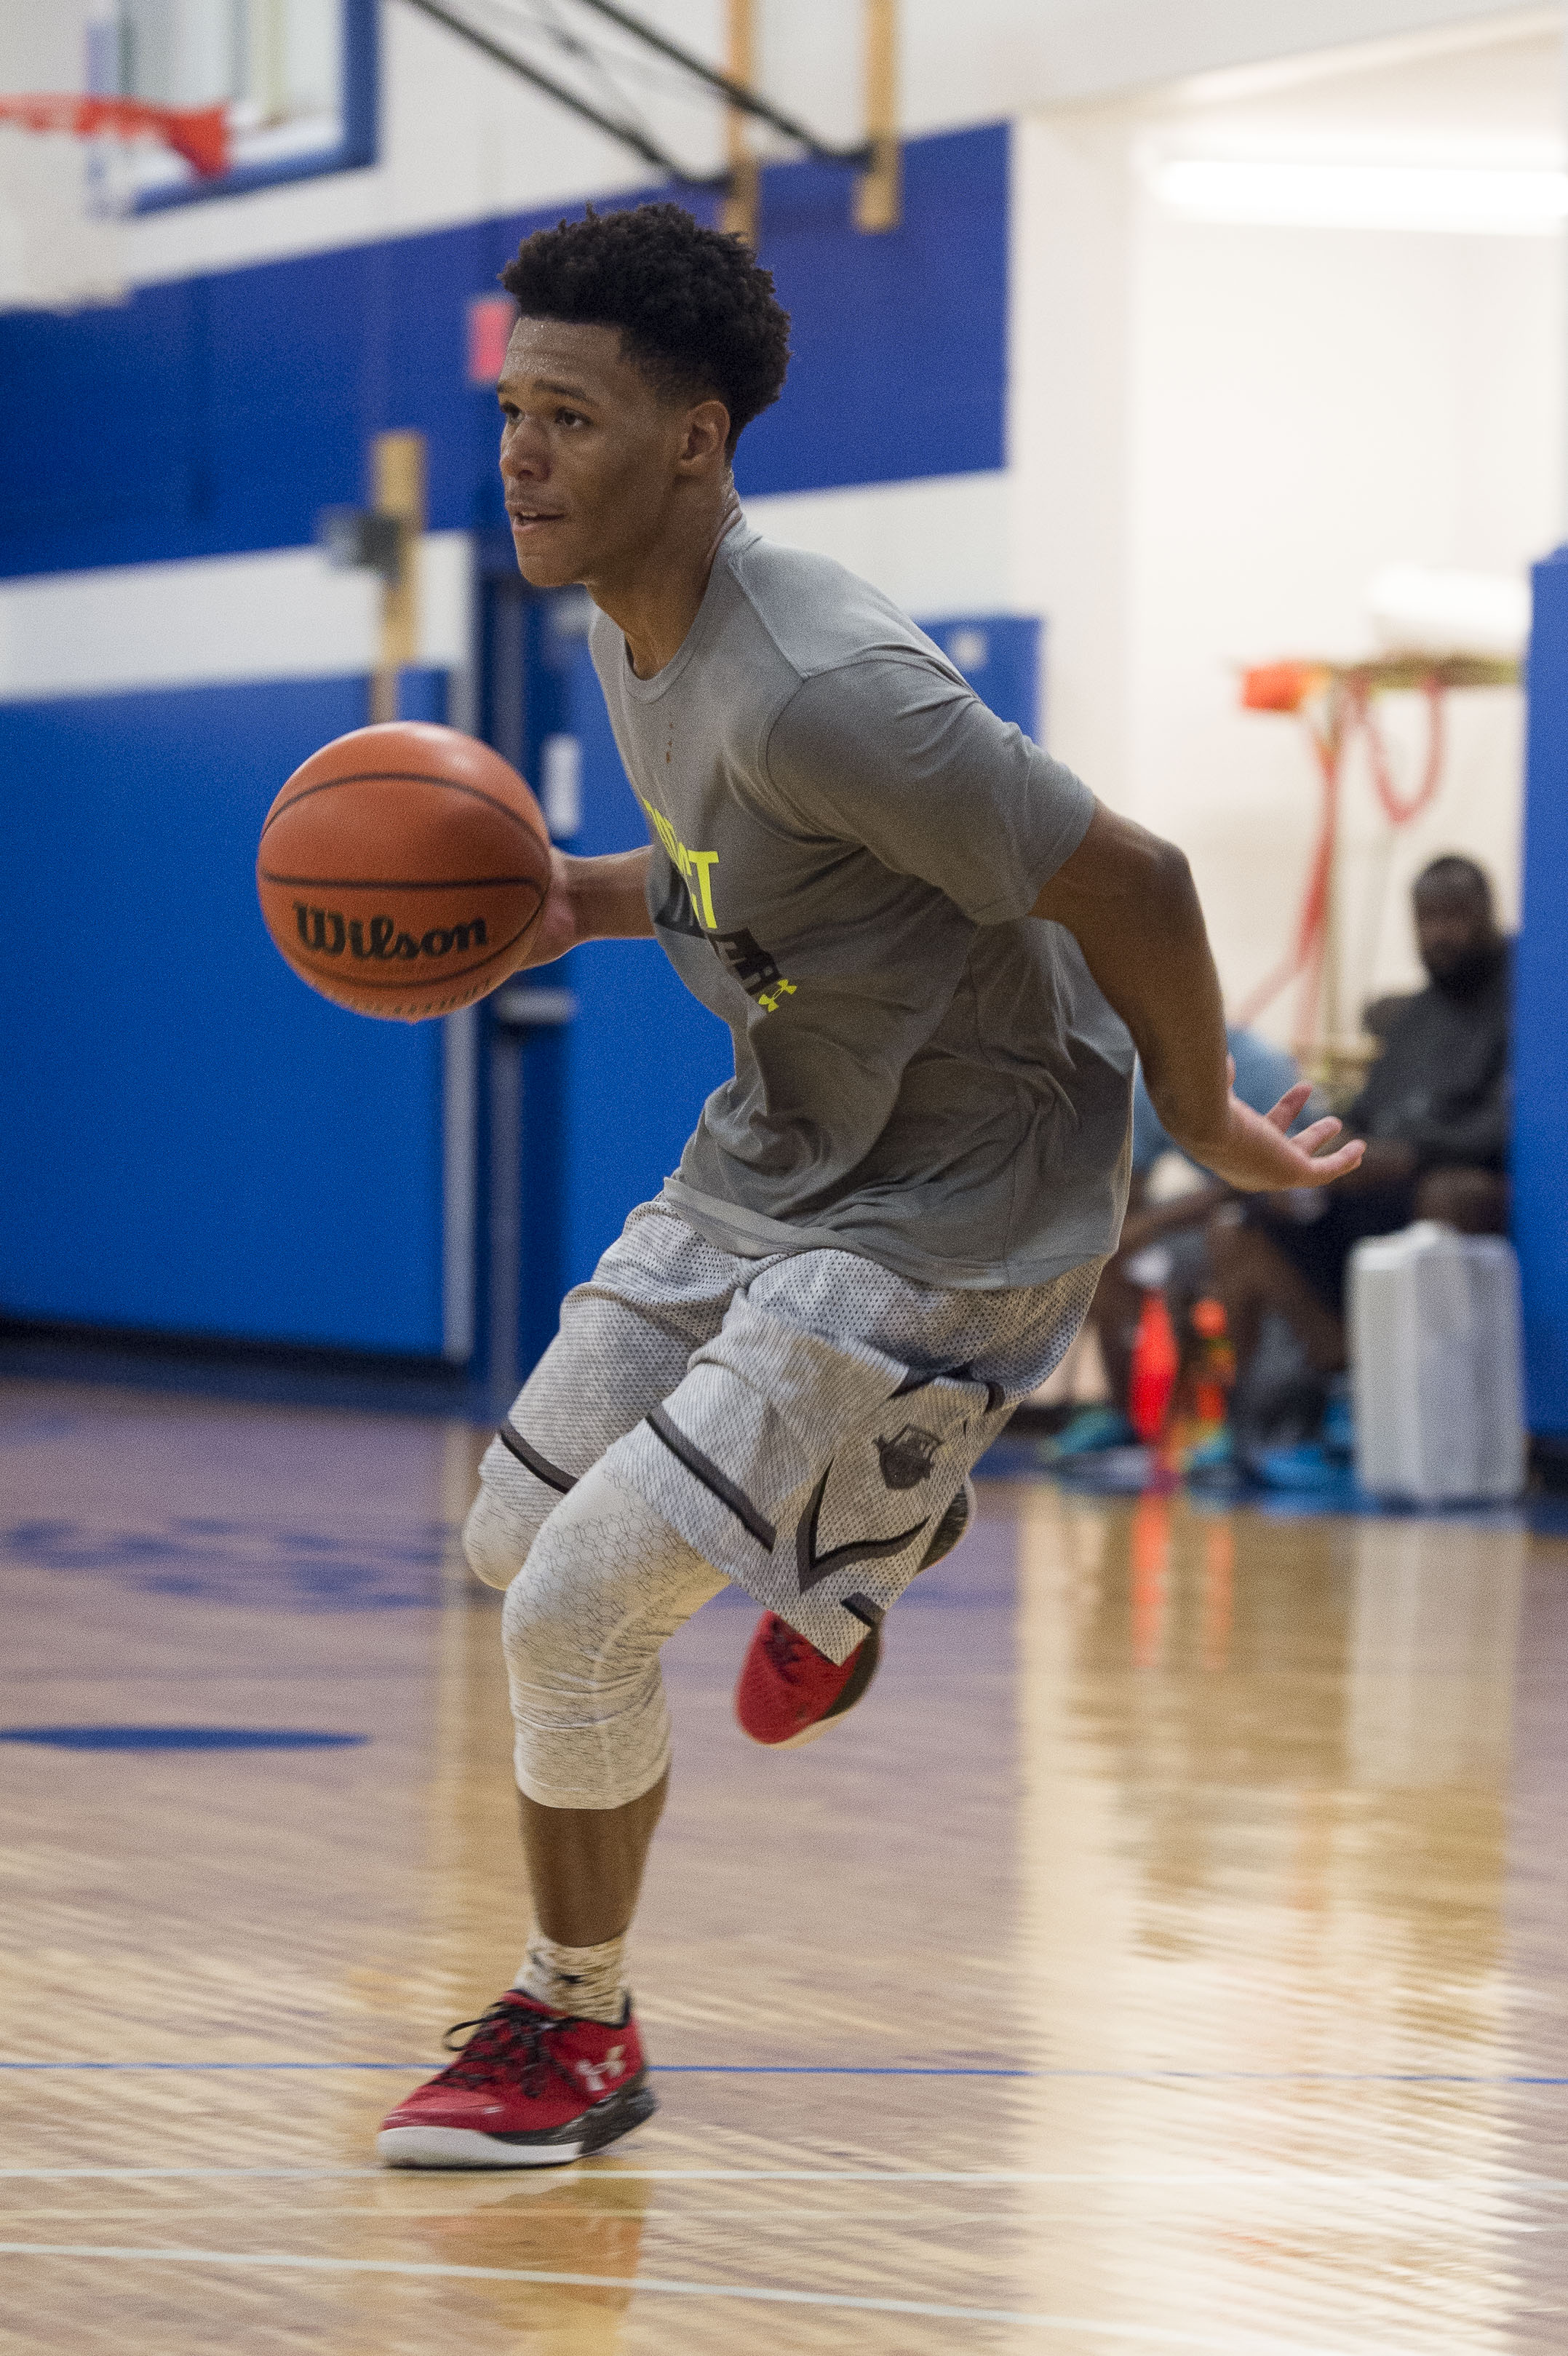 Sep 23, 2015; Dallas, TX, USA; Advance Preparatory International point guard Trevon Duval during practice at the Mark Cuban Heroes Basketball Center. -- Photo by Jerome Miron USA TODAY Sports Images, Gannett ORG XMIT: US 133760 API 9/23/2015 [Via MerlinFTP Drop]